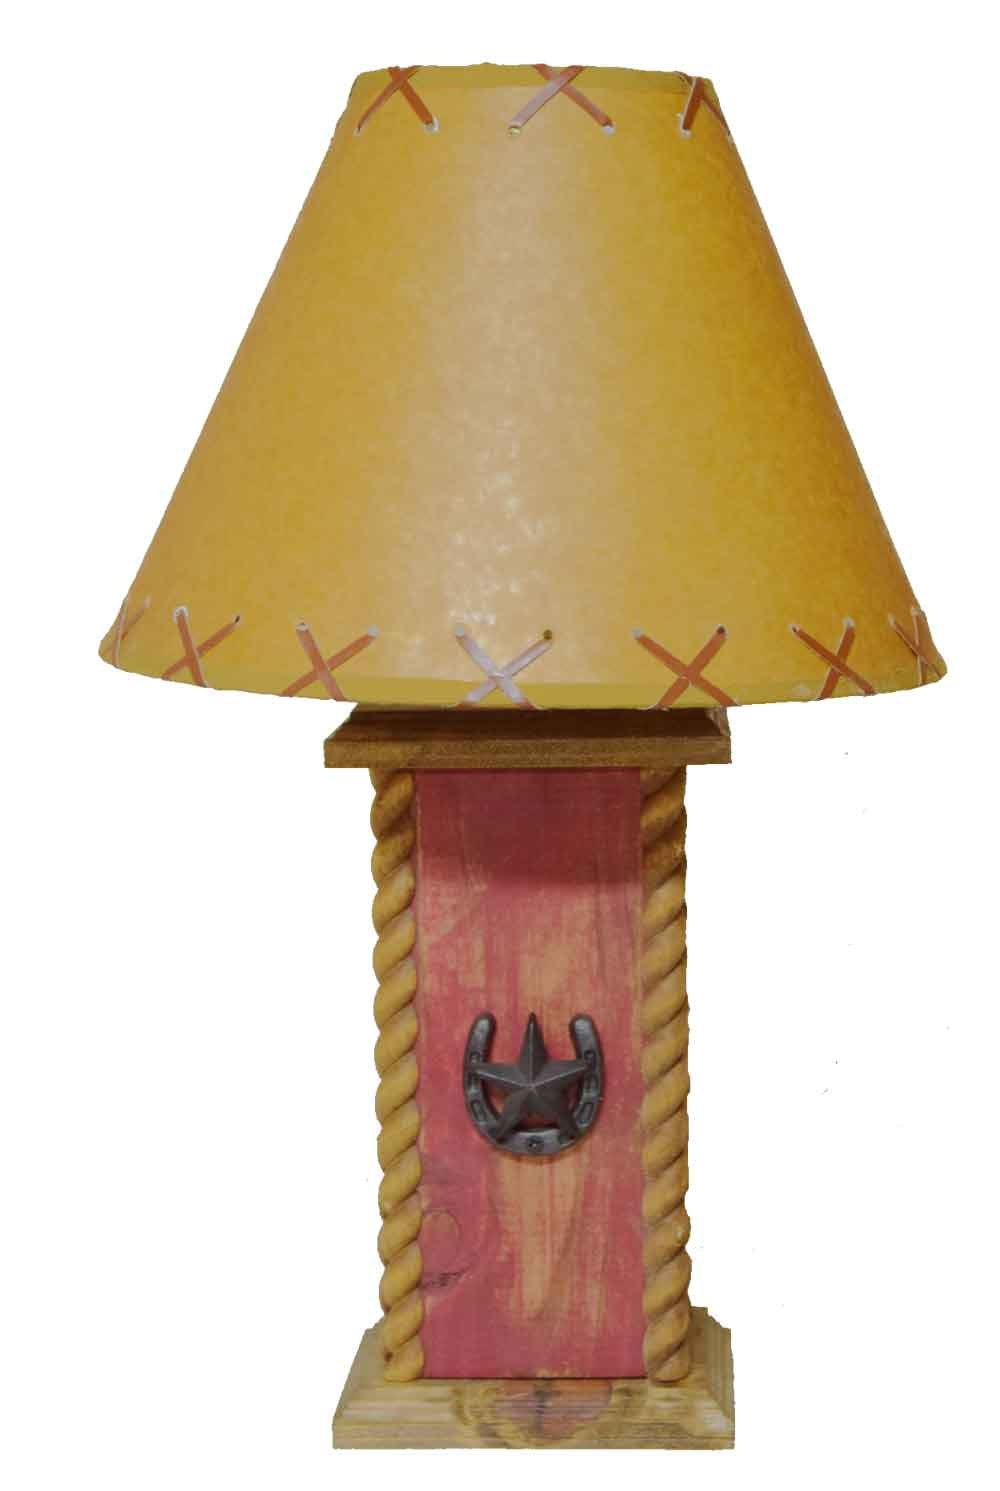 Western table lamps - Gallery Photo Gallery Photo Gallery Photo